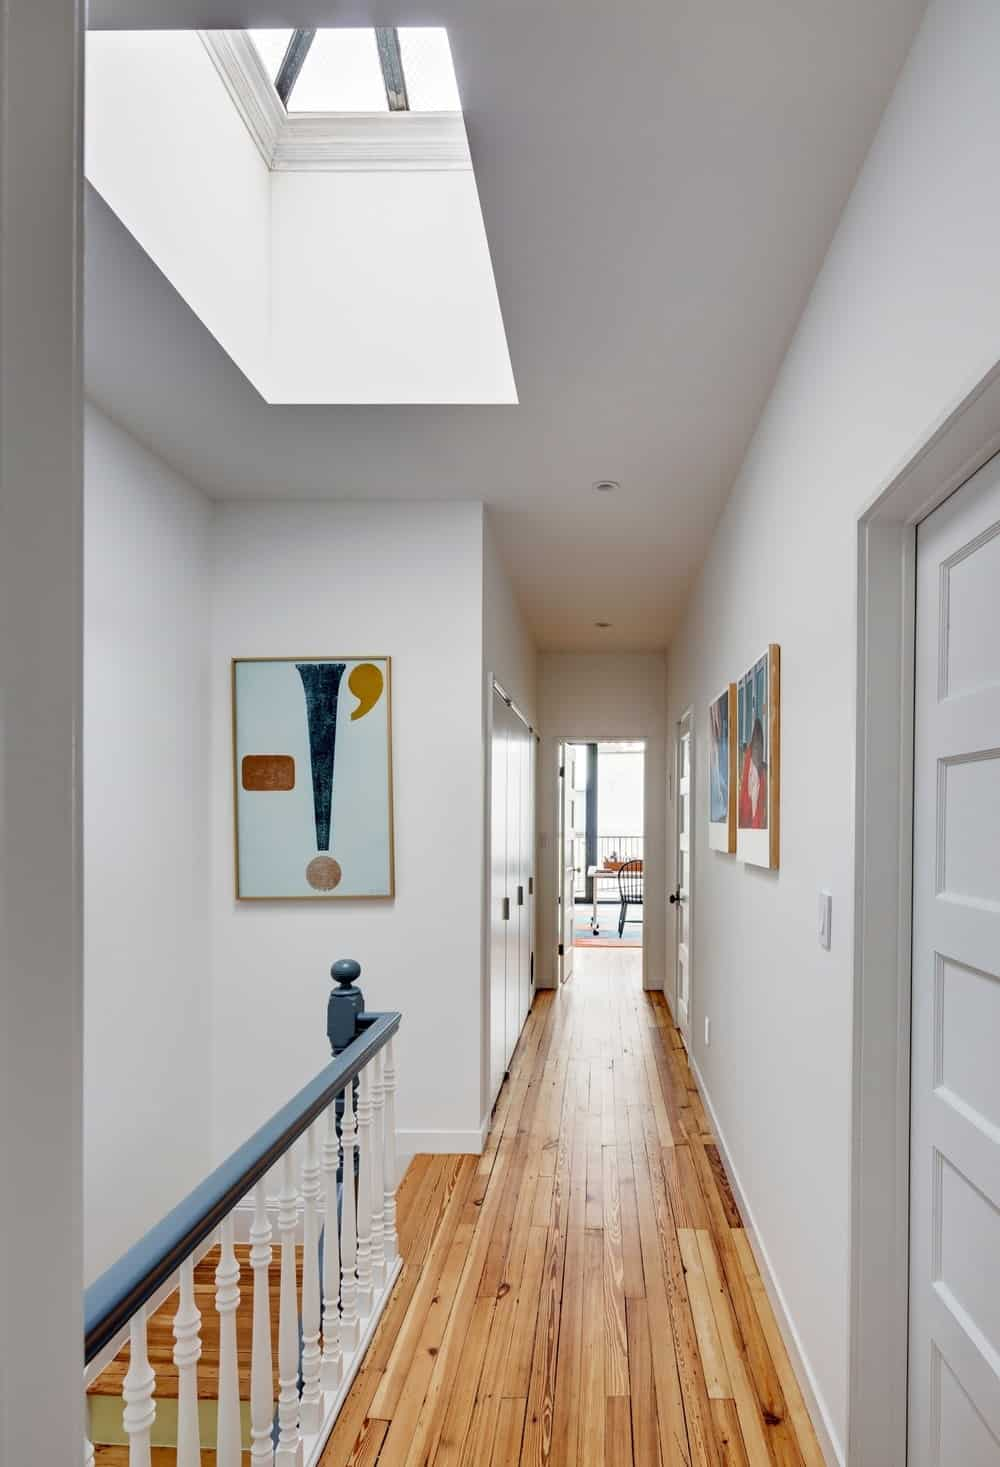 The hallway is lighted by the skylight adding brightness to the hardwood flooring and white walls. Photo Credit: Francis Dzikowski/OTTO